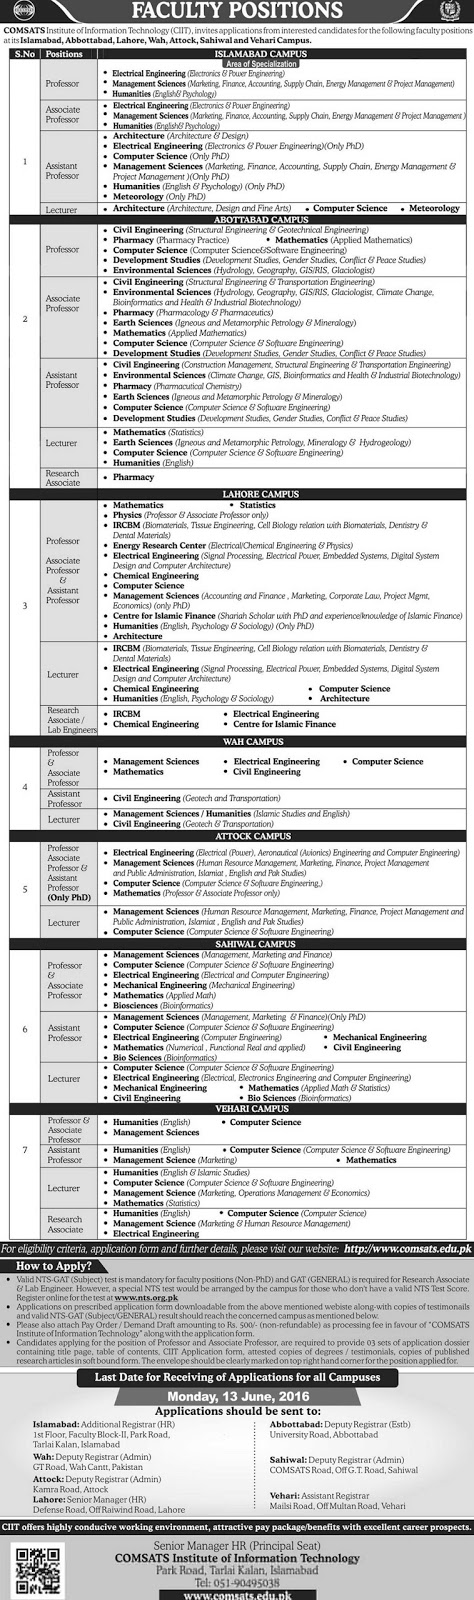 Teaching Faculty Jobs in Comsats Institutes 2016 Jobs